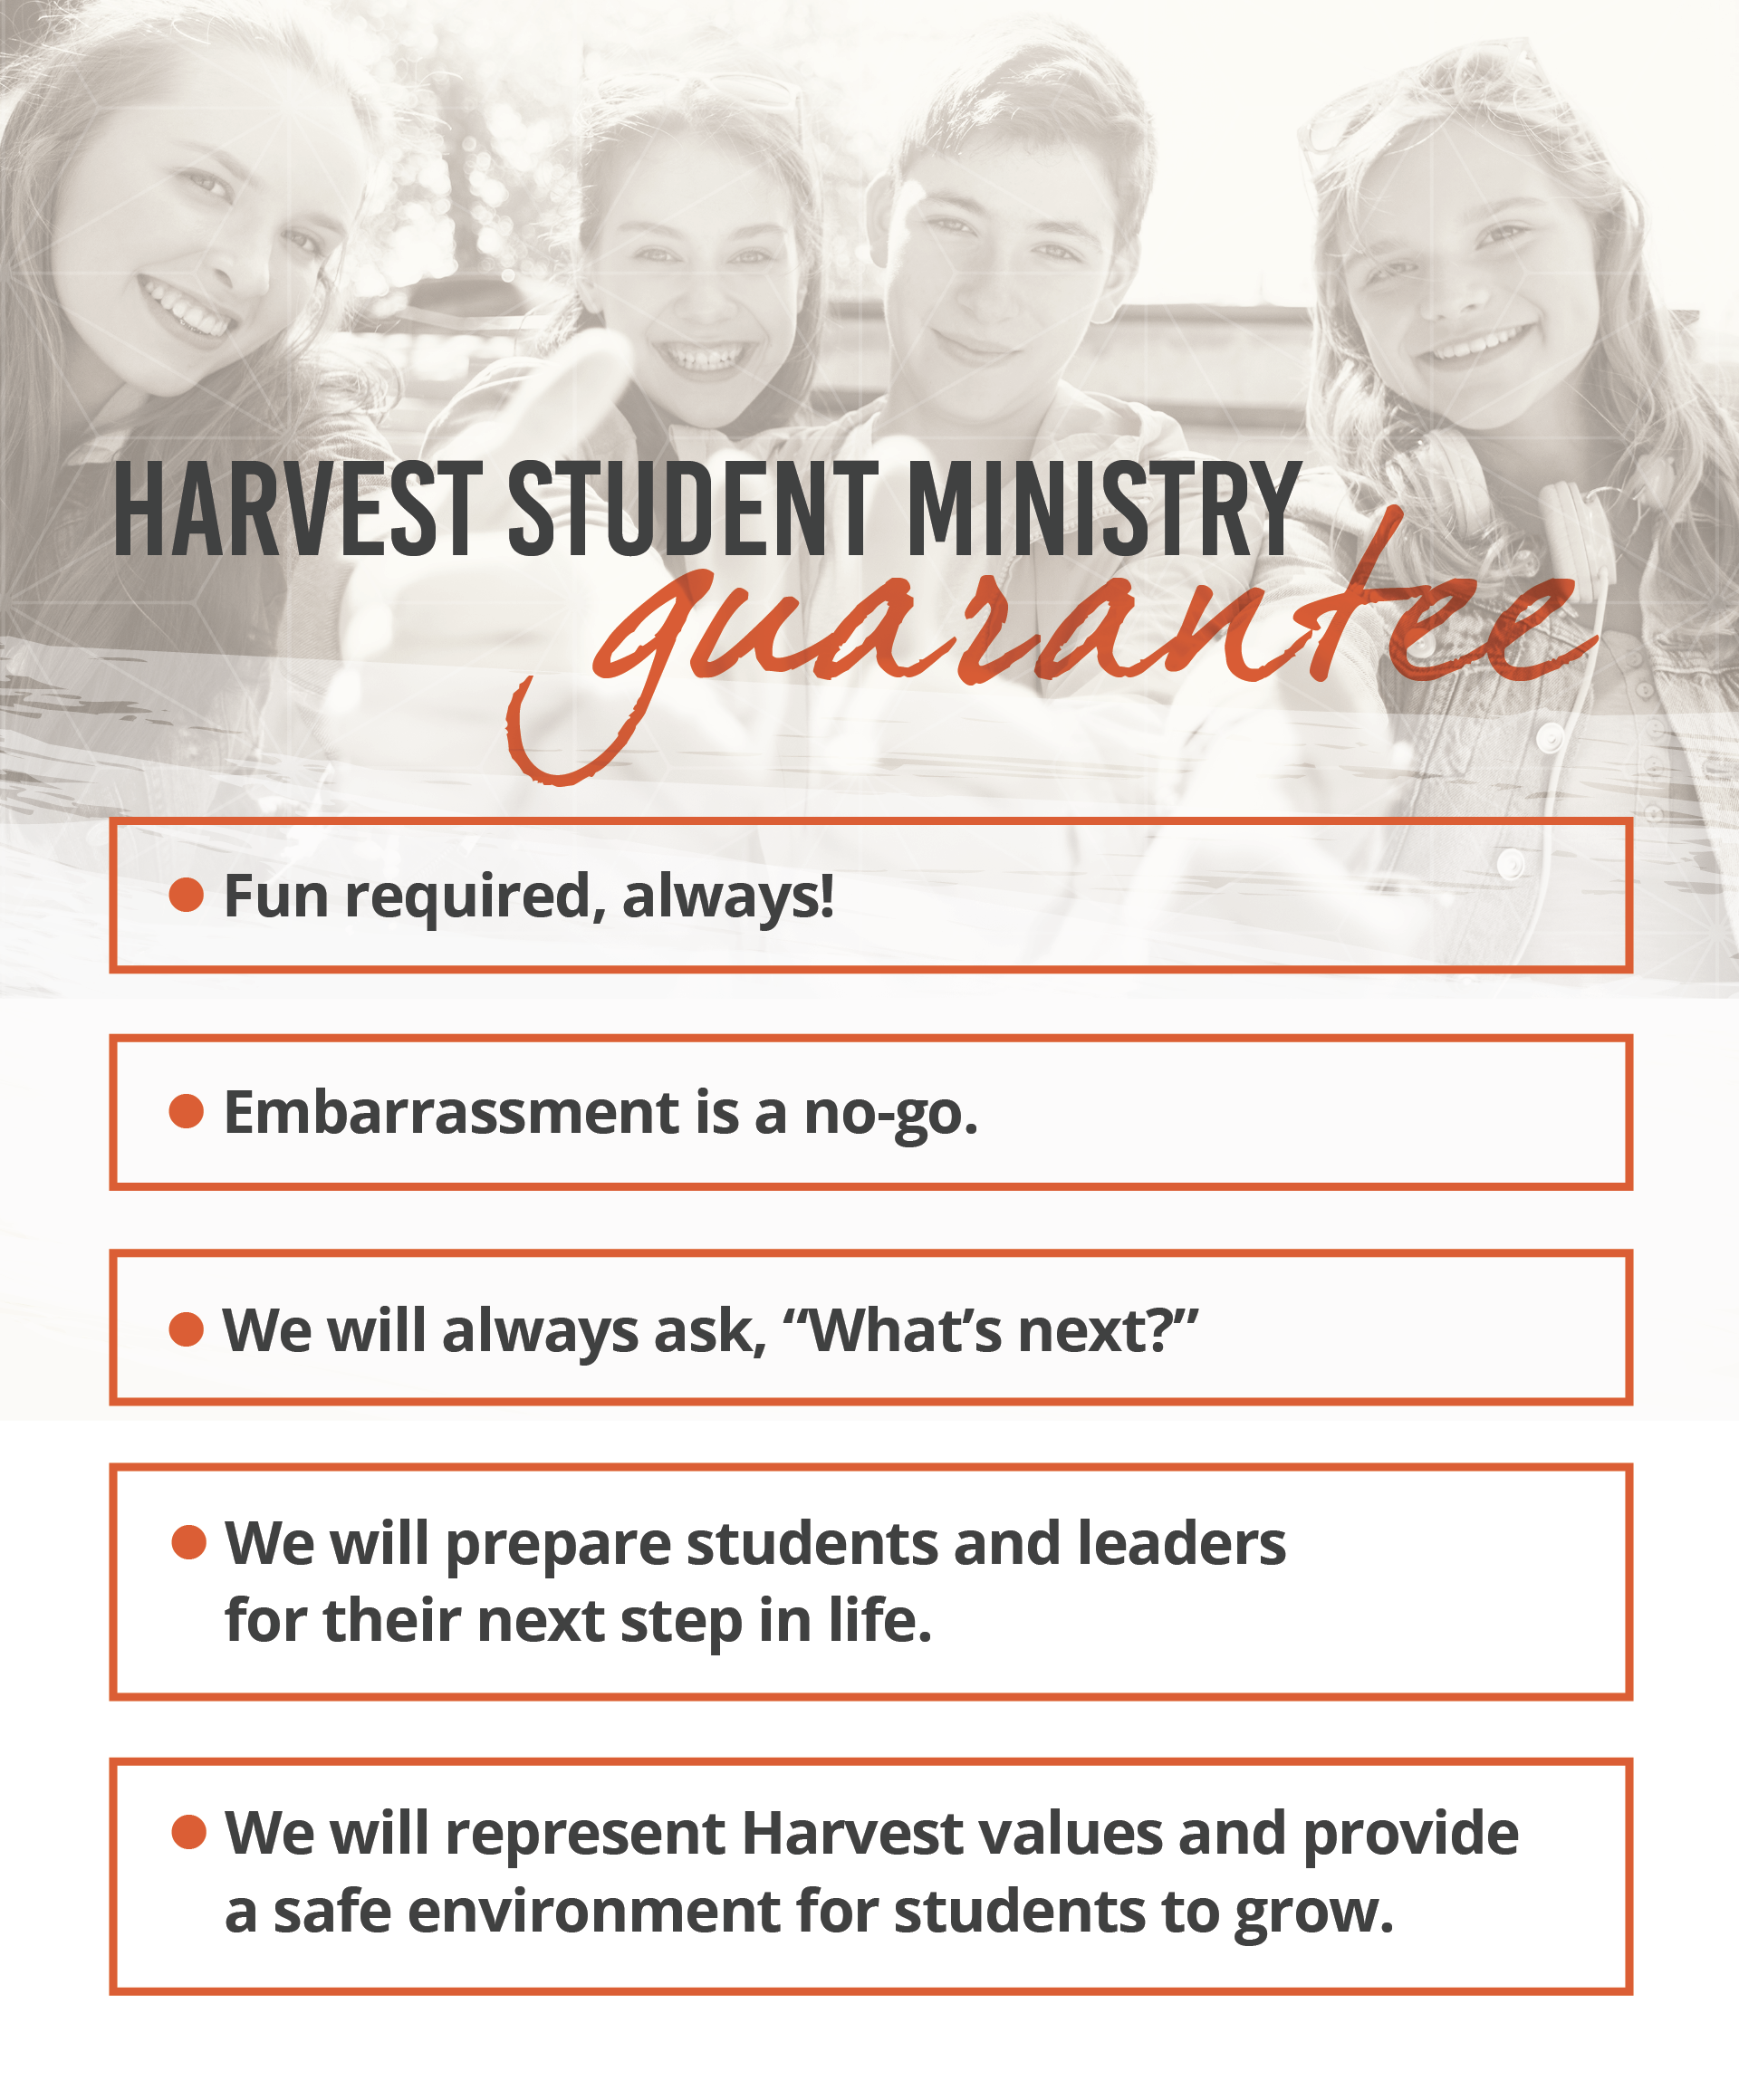 harvest-student-guarantee-2-01.png#asset:9482